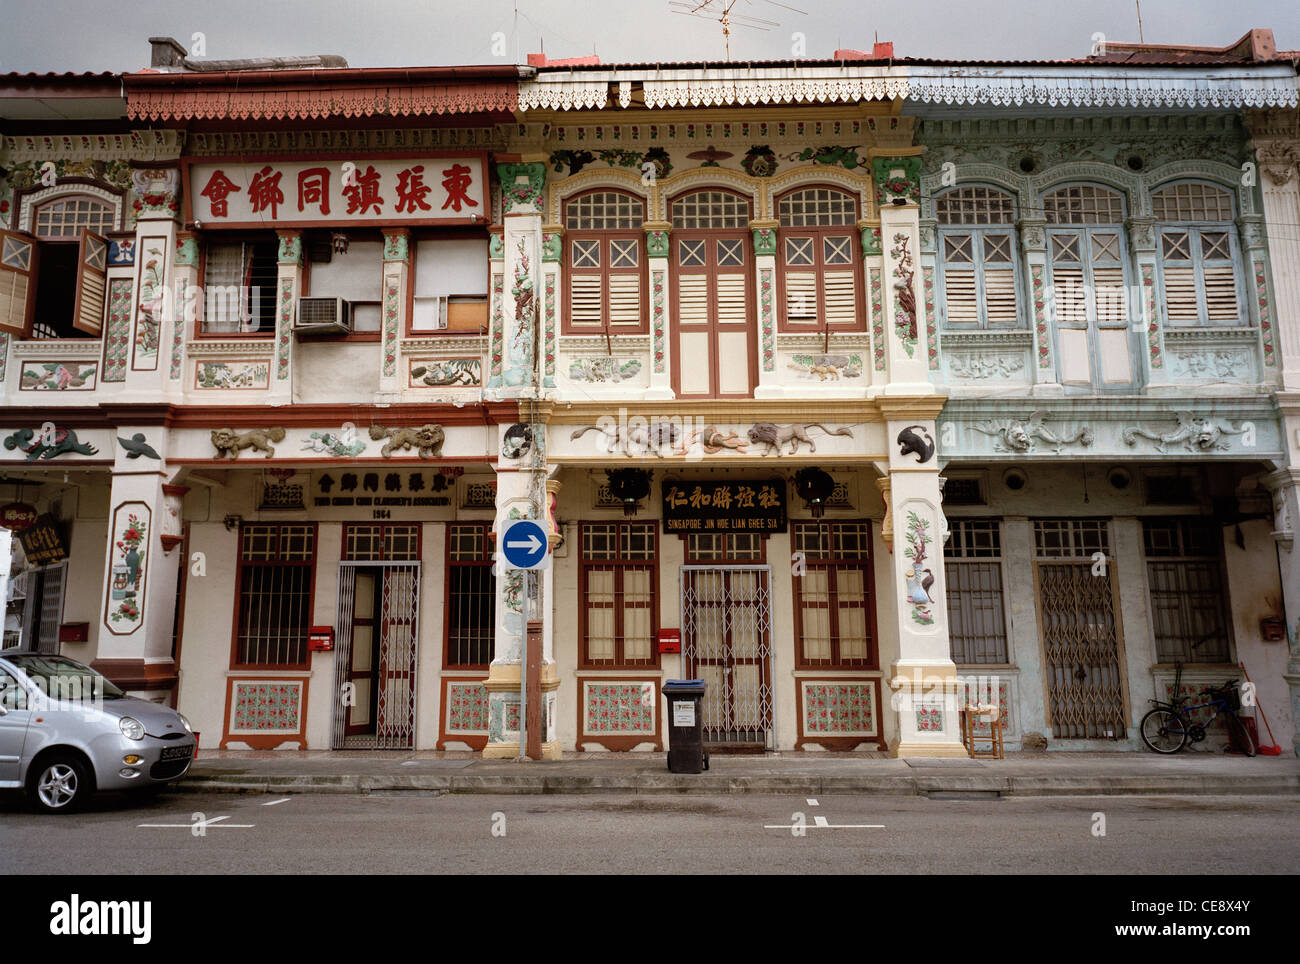 Peranakan Baba Nonya architecture shophouse housing in Geylang in Singapore in Far East Southeast Asia. House Building - Stock Image